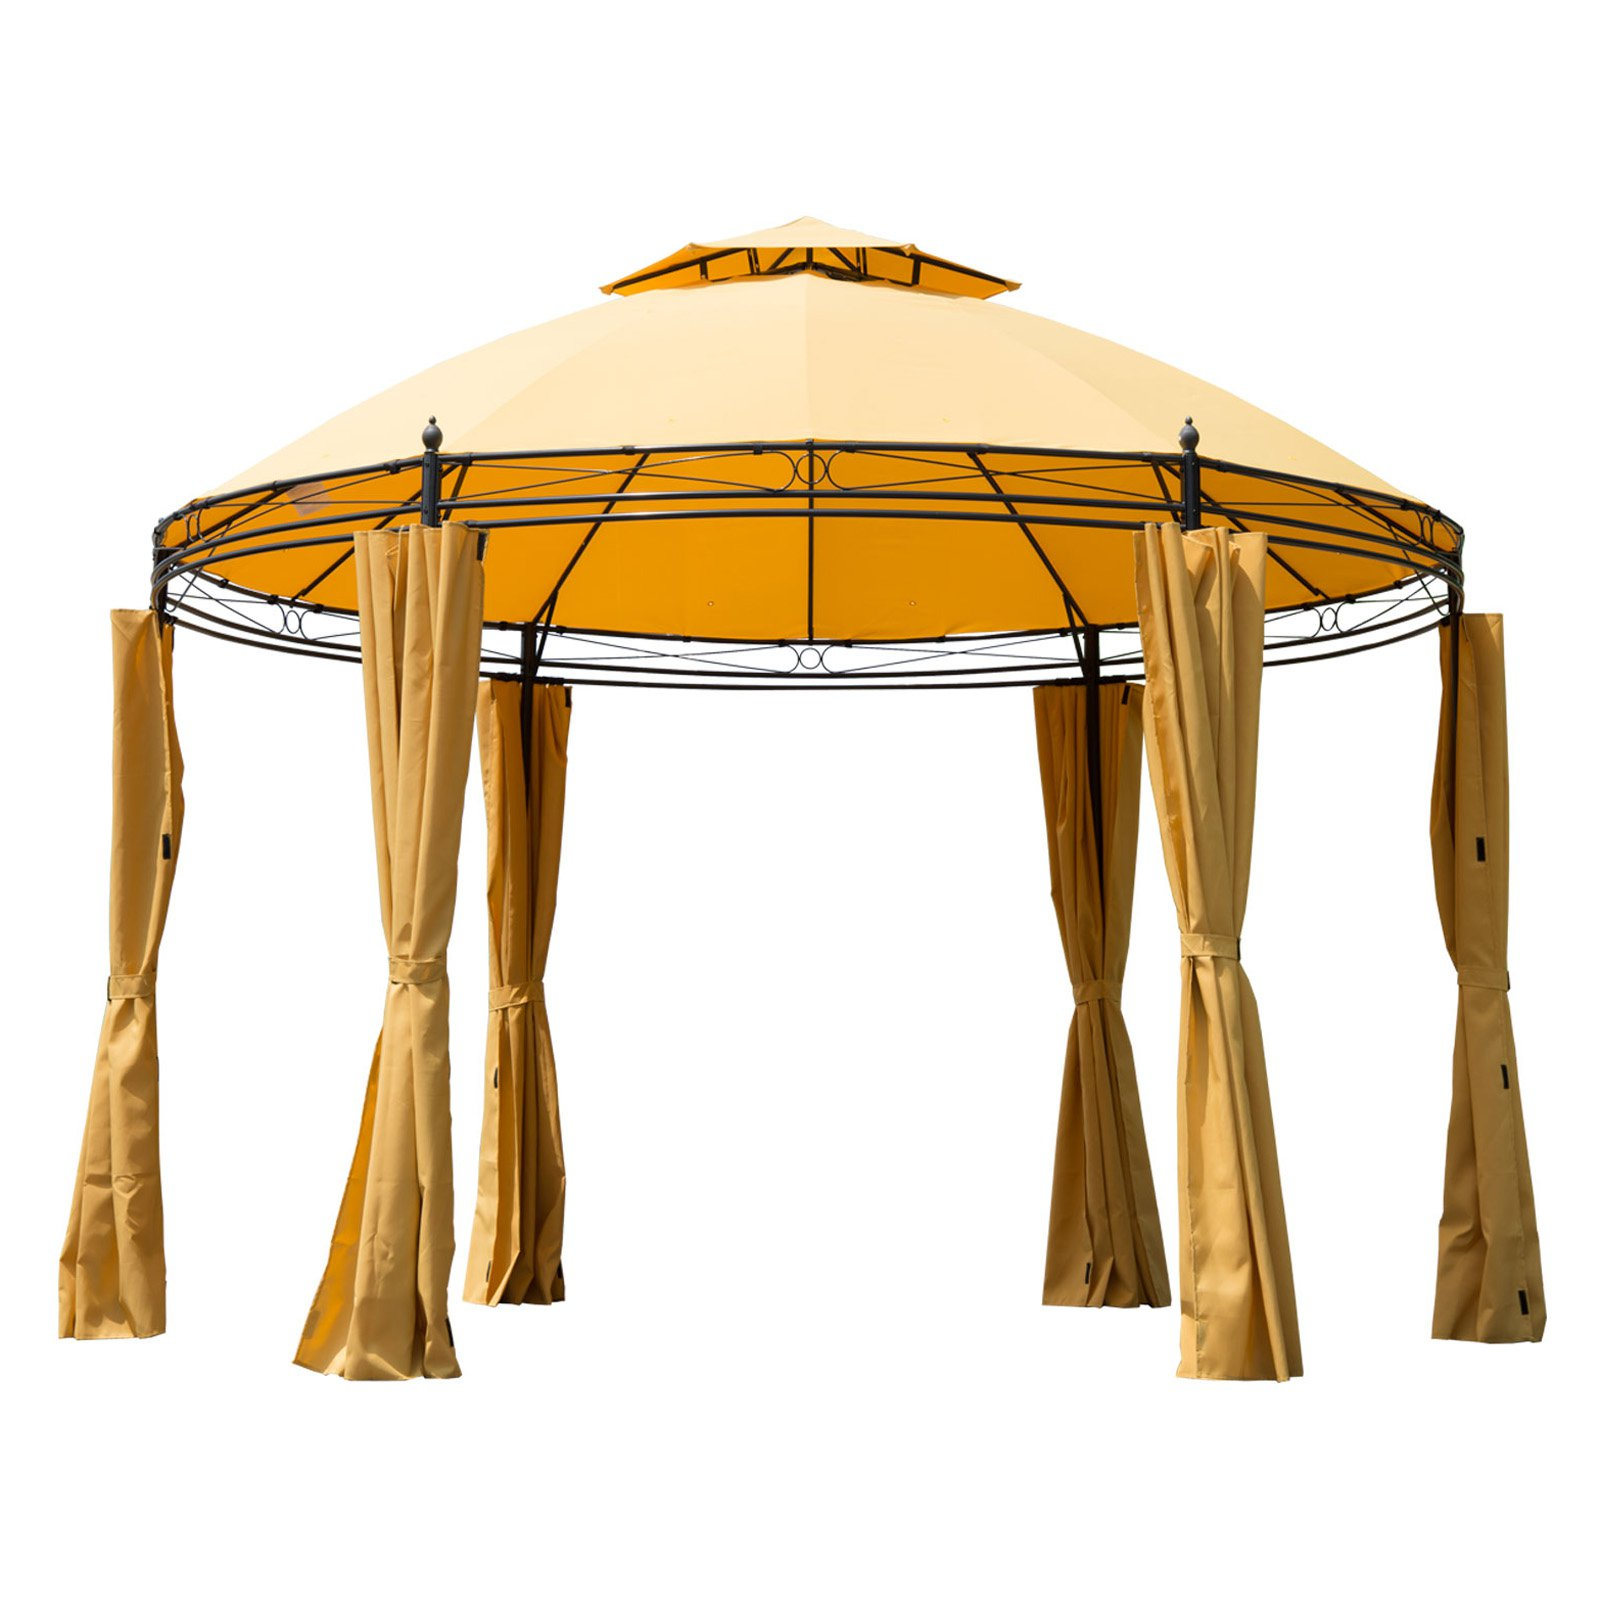 Outsunny 11 ft. Round Patio Party Gazebo Canopy with Curtains